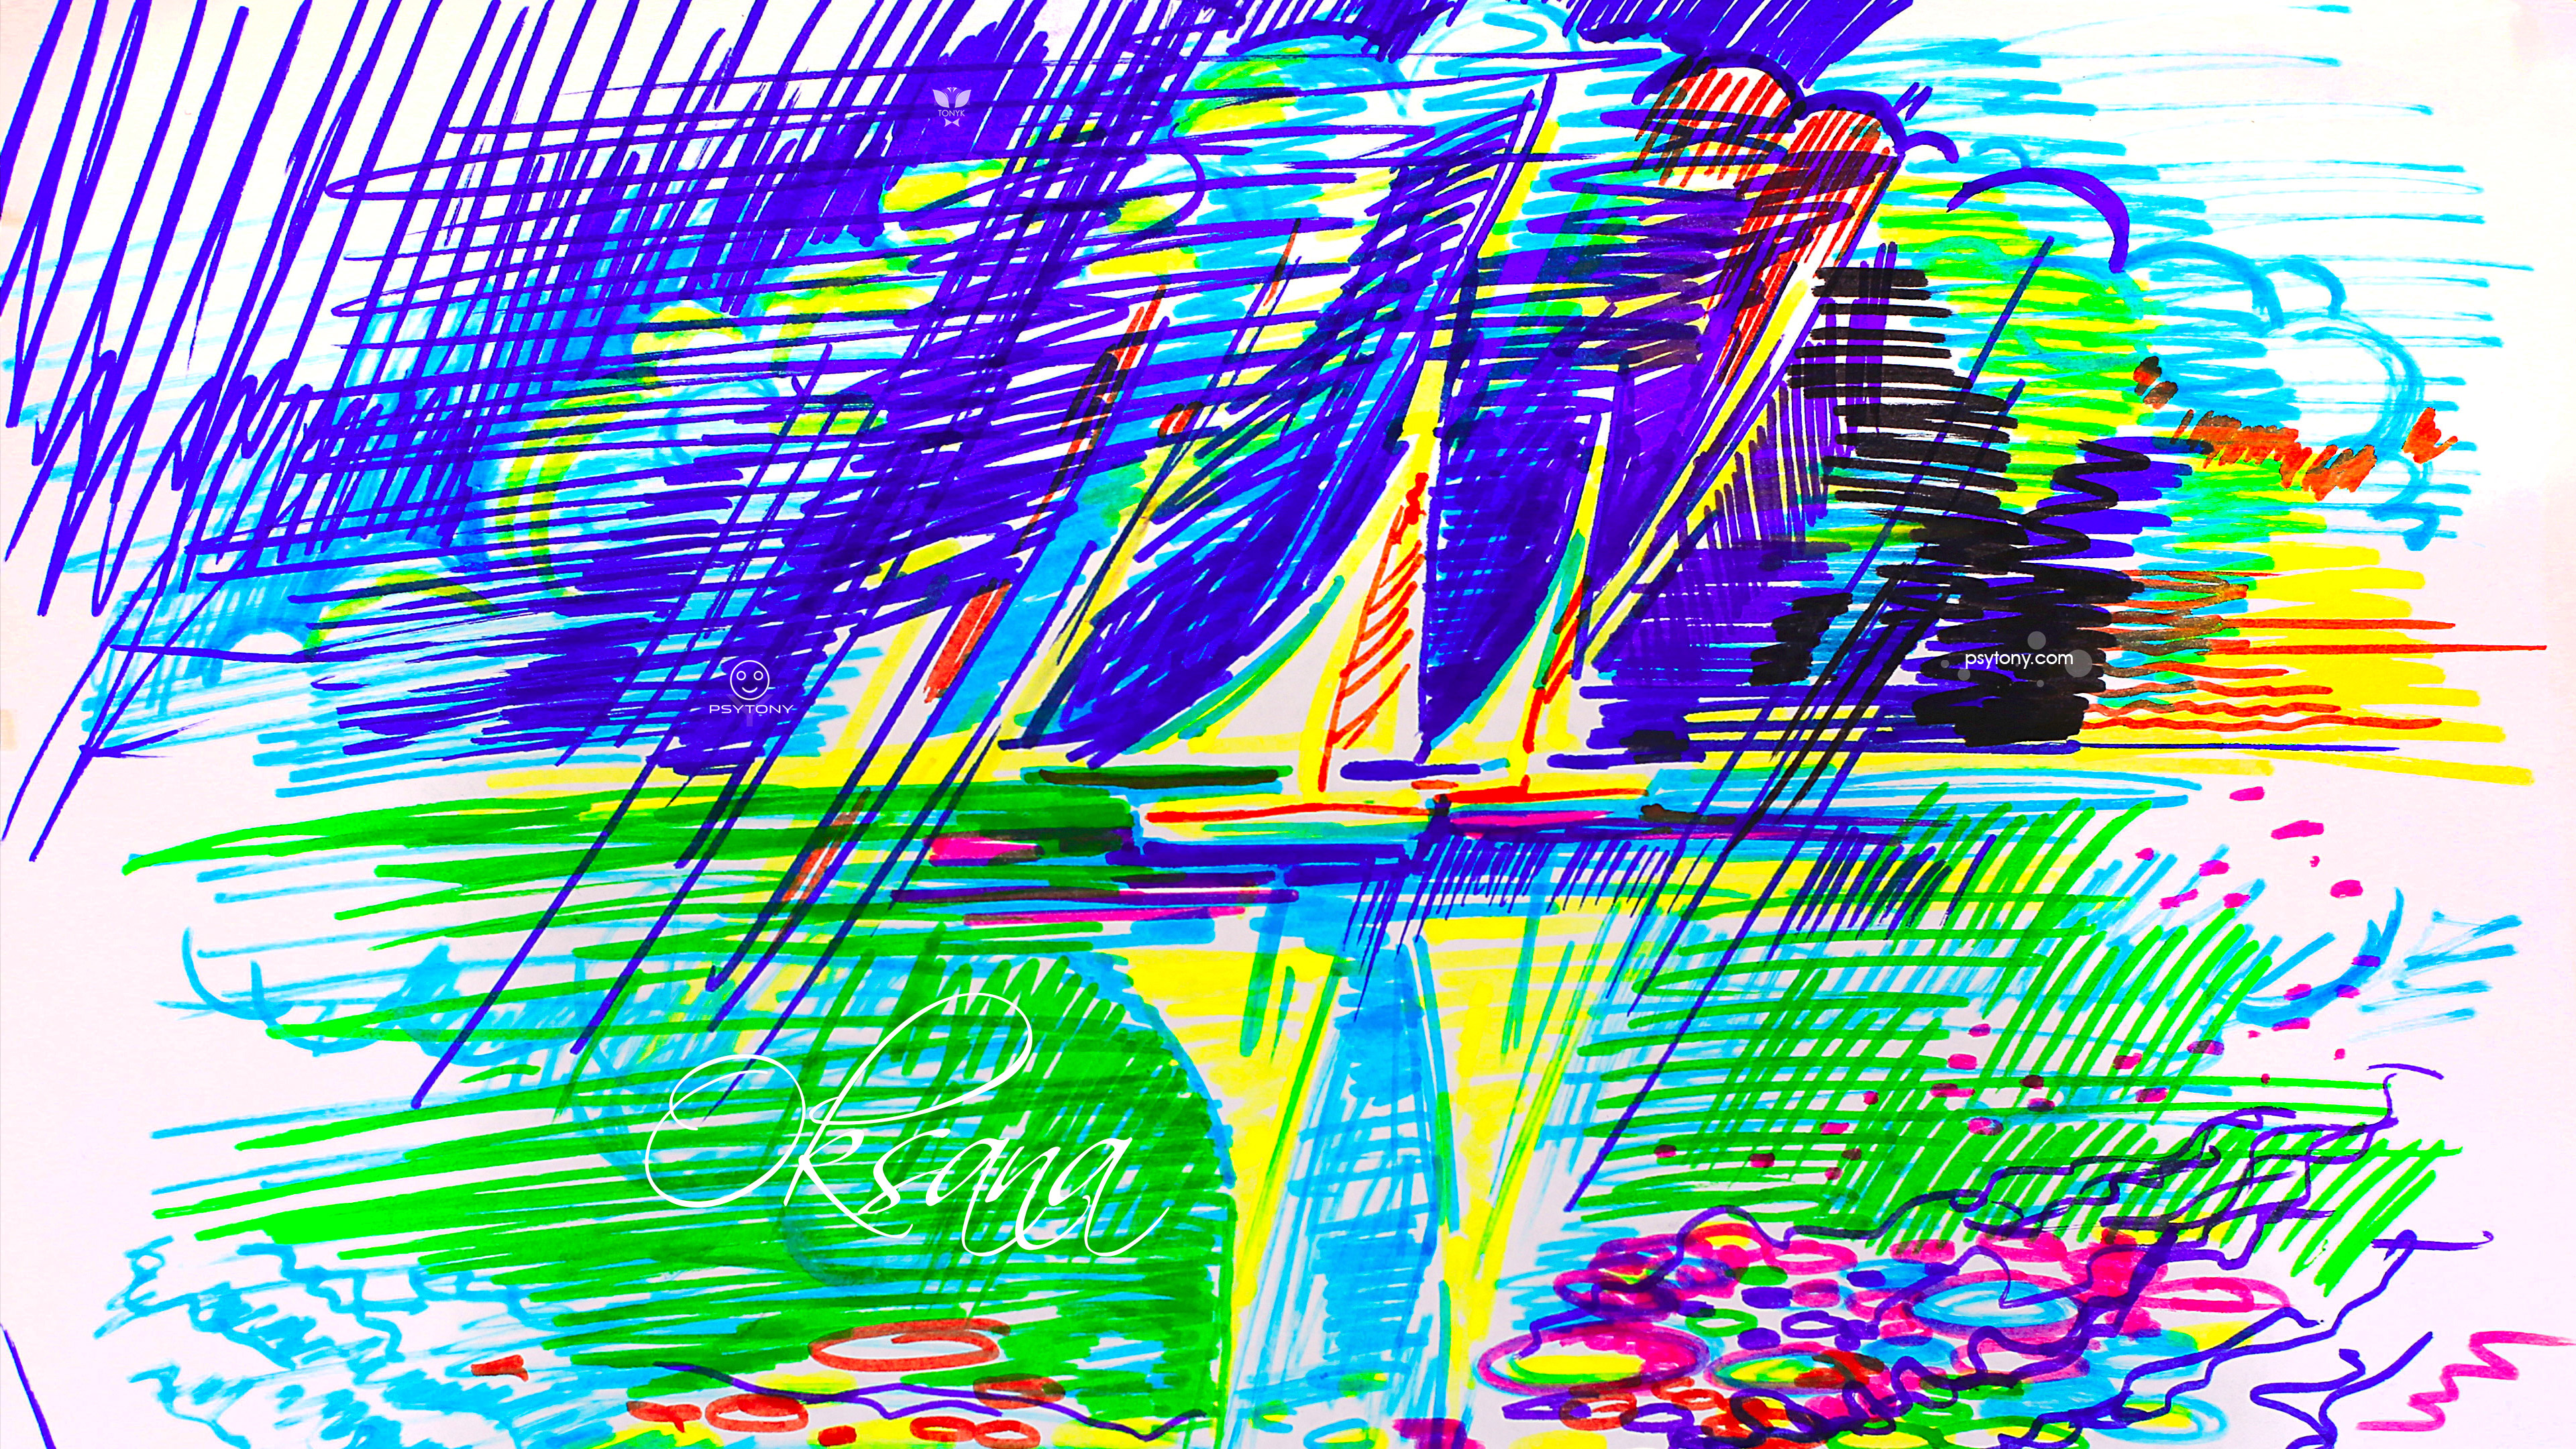 Oksana-Soul-Girl-Super-Sails-Water-Sky-Double-Life-Psy-Picture-Drawing-Paints-Markers-Art-2019-Multicolors-4K-Wallpapers-by-Psychologist-Tony-Kokhan-www.psytony.com-image